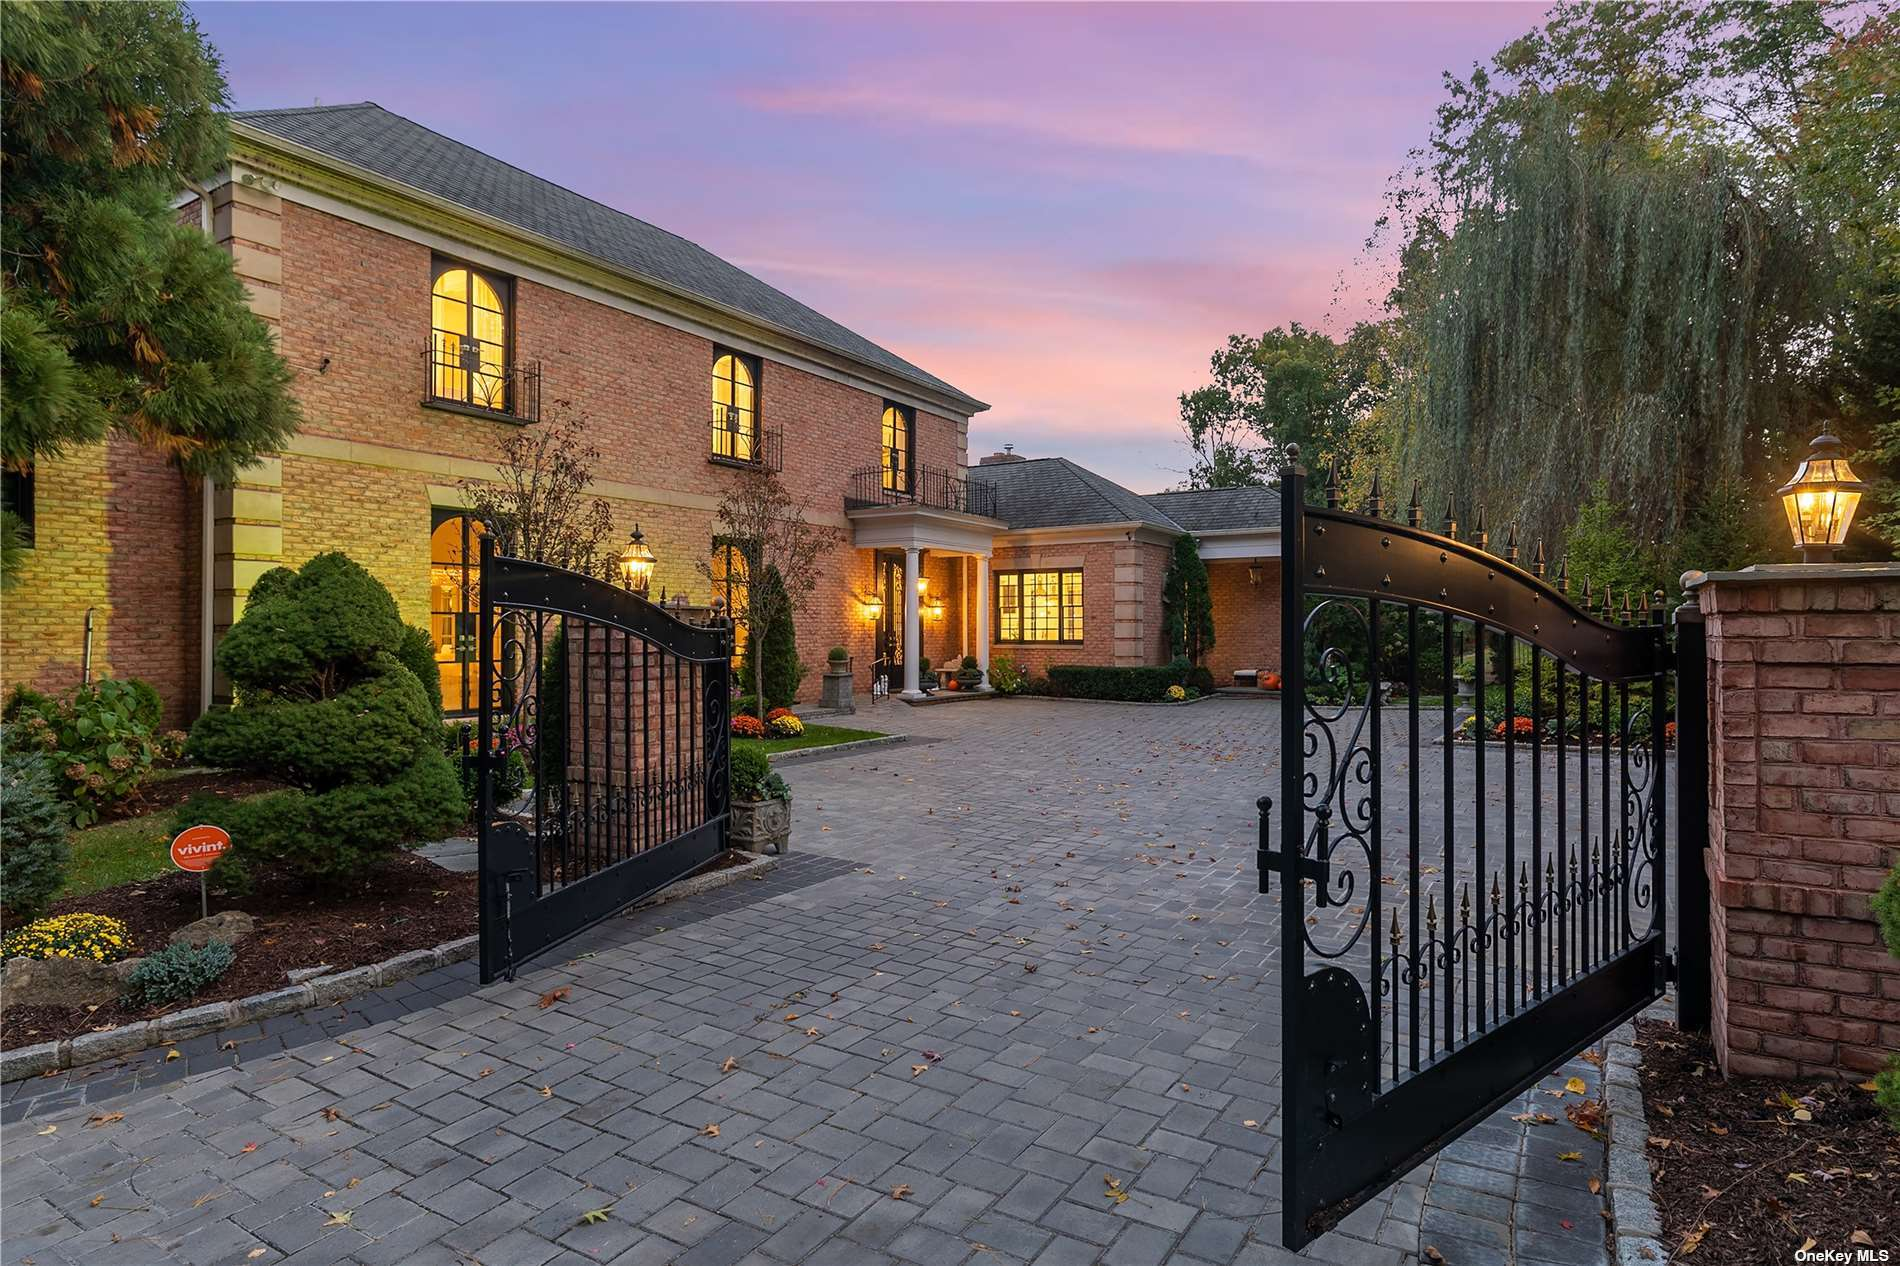 Impressive Gold Coast 21st Century Brick Manor style residence on 3.3 acres with gated courtyard entrance. This 6-bedroom, 6.5-bath designer's own home is exquisitely decorated, appearing in numerous commercial photo shoots. Spacious Public Rooms with high ceilings and ample wall space ideal to display an art collection. A 2-island kitchen with top appliances will be enjoyed by an epicurean cook. Additional highlights include a home theatre, pool/game room, 5-fireplaces, walkout basement with gym. 4-car garage. Picturesque grounds with covered outdoor patio and sparkling pool. A stately Guest House features 2-bedrooms and views of the adjacent Louis C. Clark Sanctuary Preserve owned and managed by the North Shore Land Alliance. No neighbors in the back, ever.  Complete privacy in the Village of Old Brookville. Just 25 miles to NYC, offering numerous golf/tennis clubs, marinas, biking trails plus cultural venues and numerous restaurants and shopping options. North Shore School District.